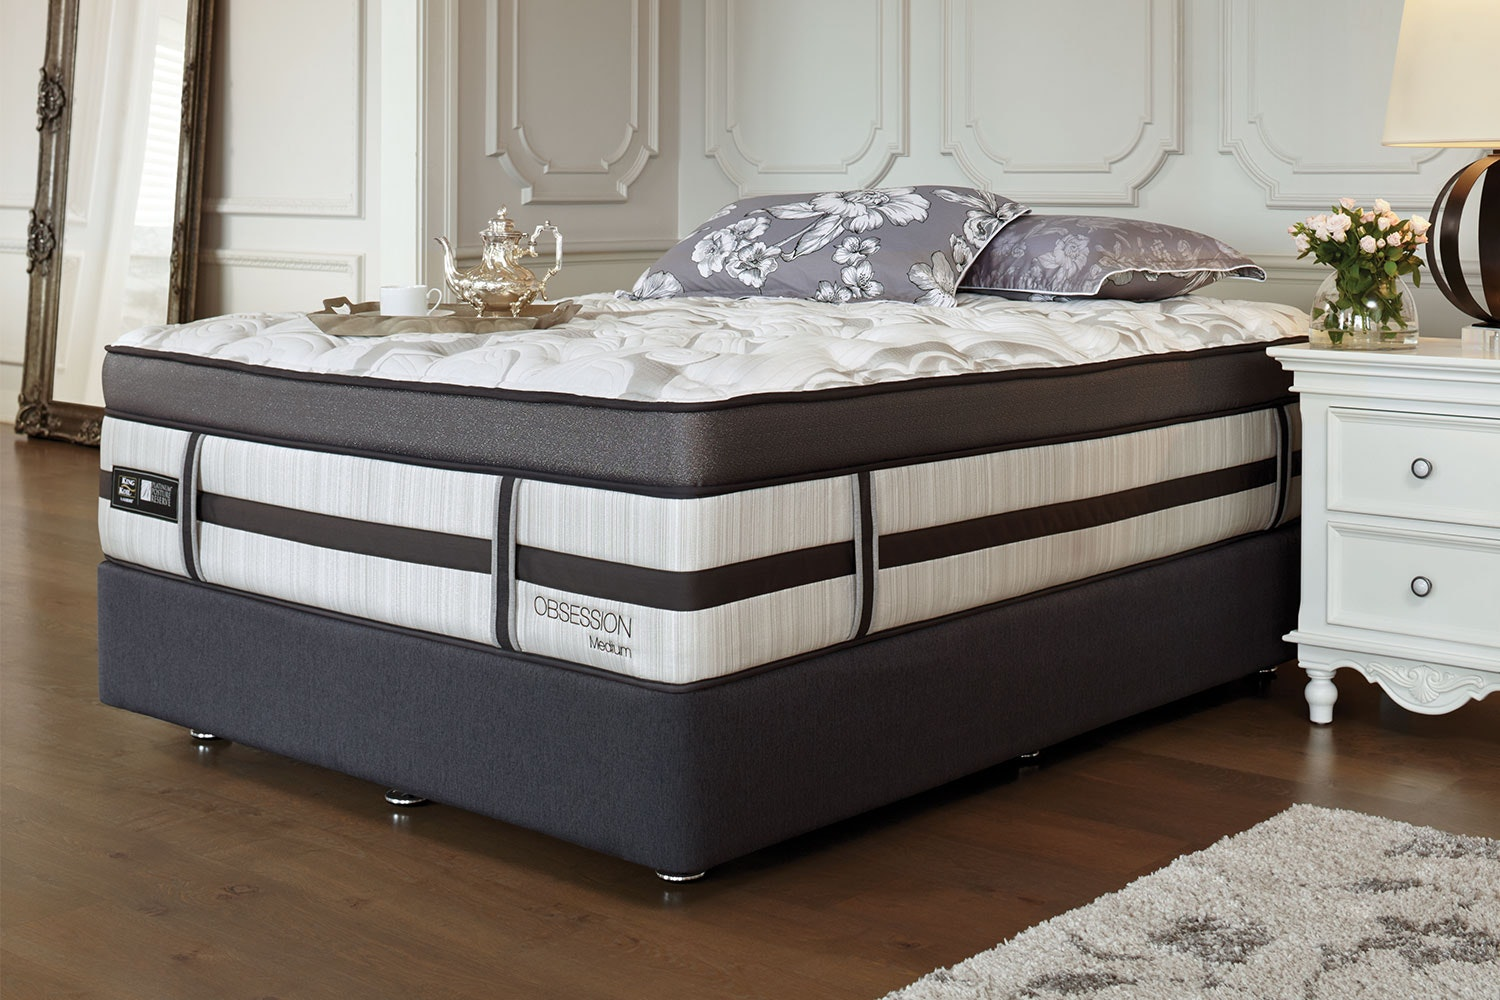 Obsession Medium Super King Bed by King Koil